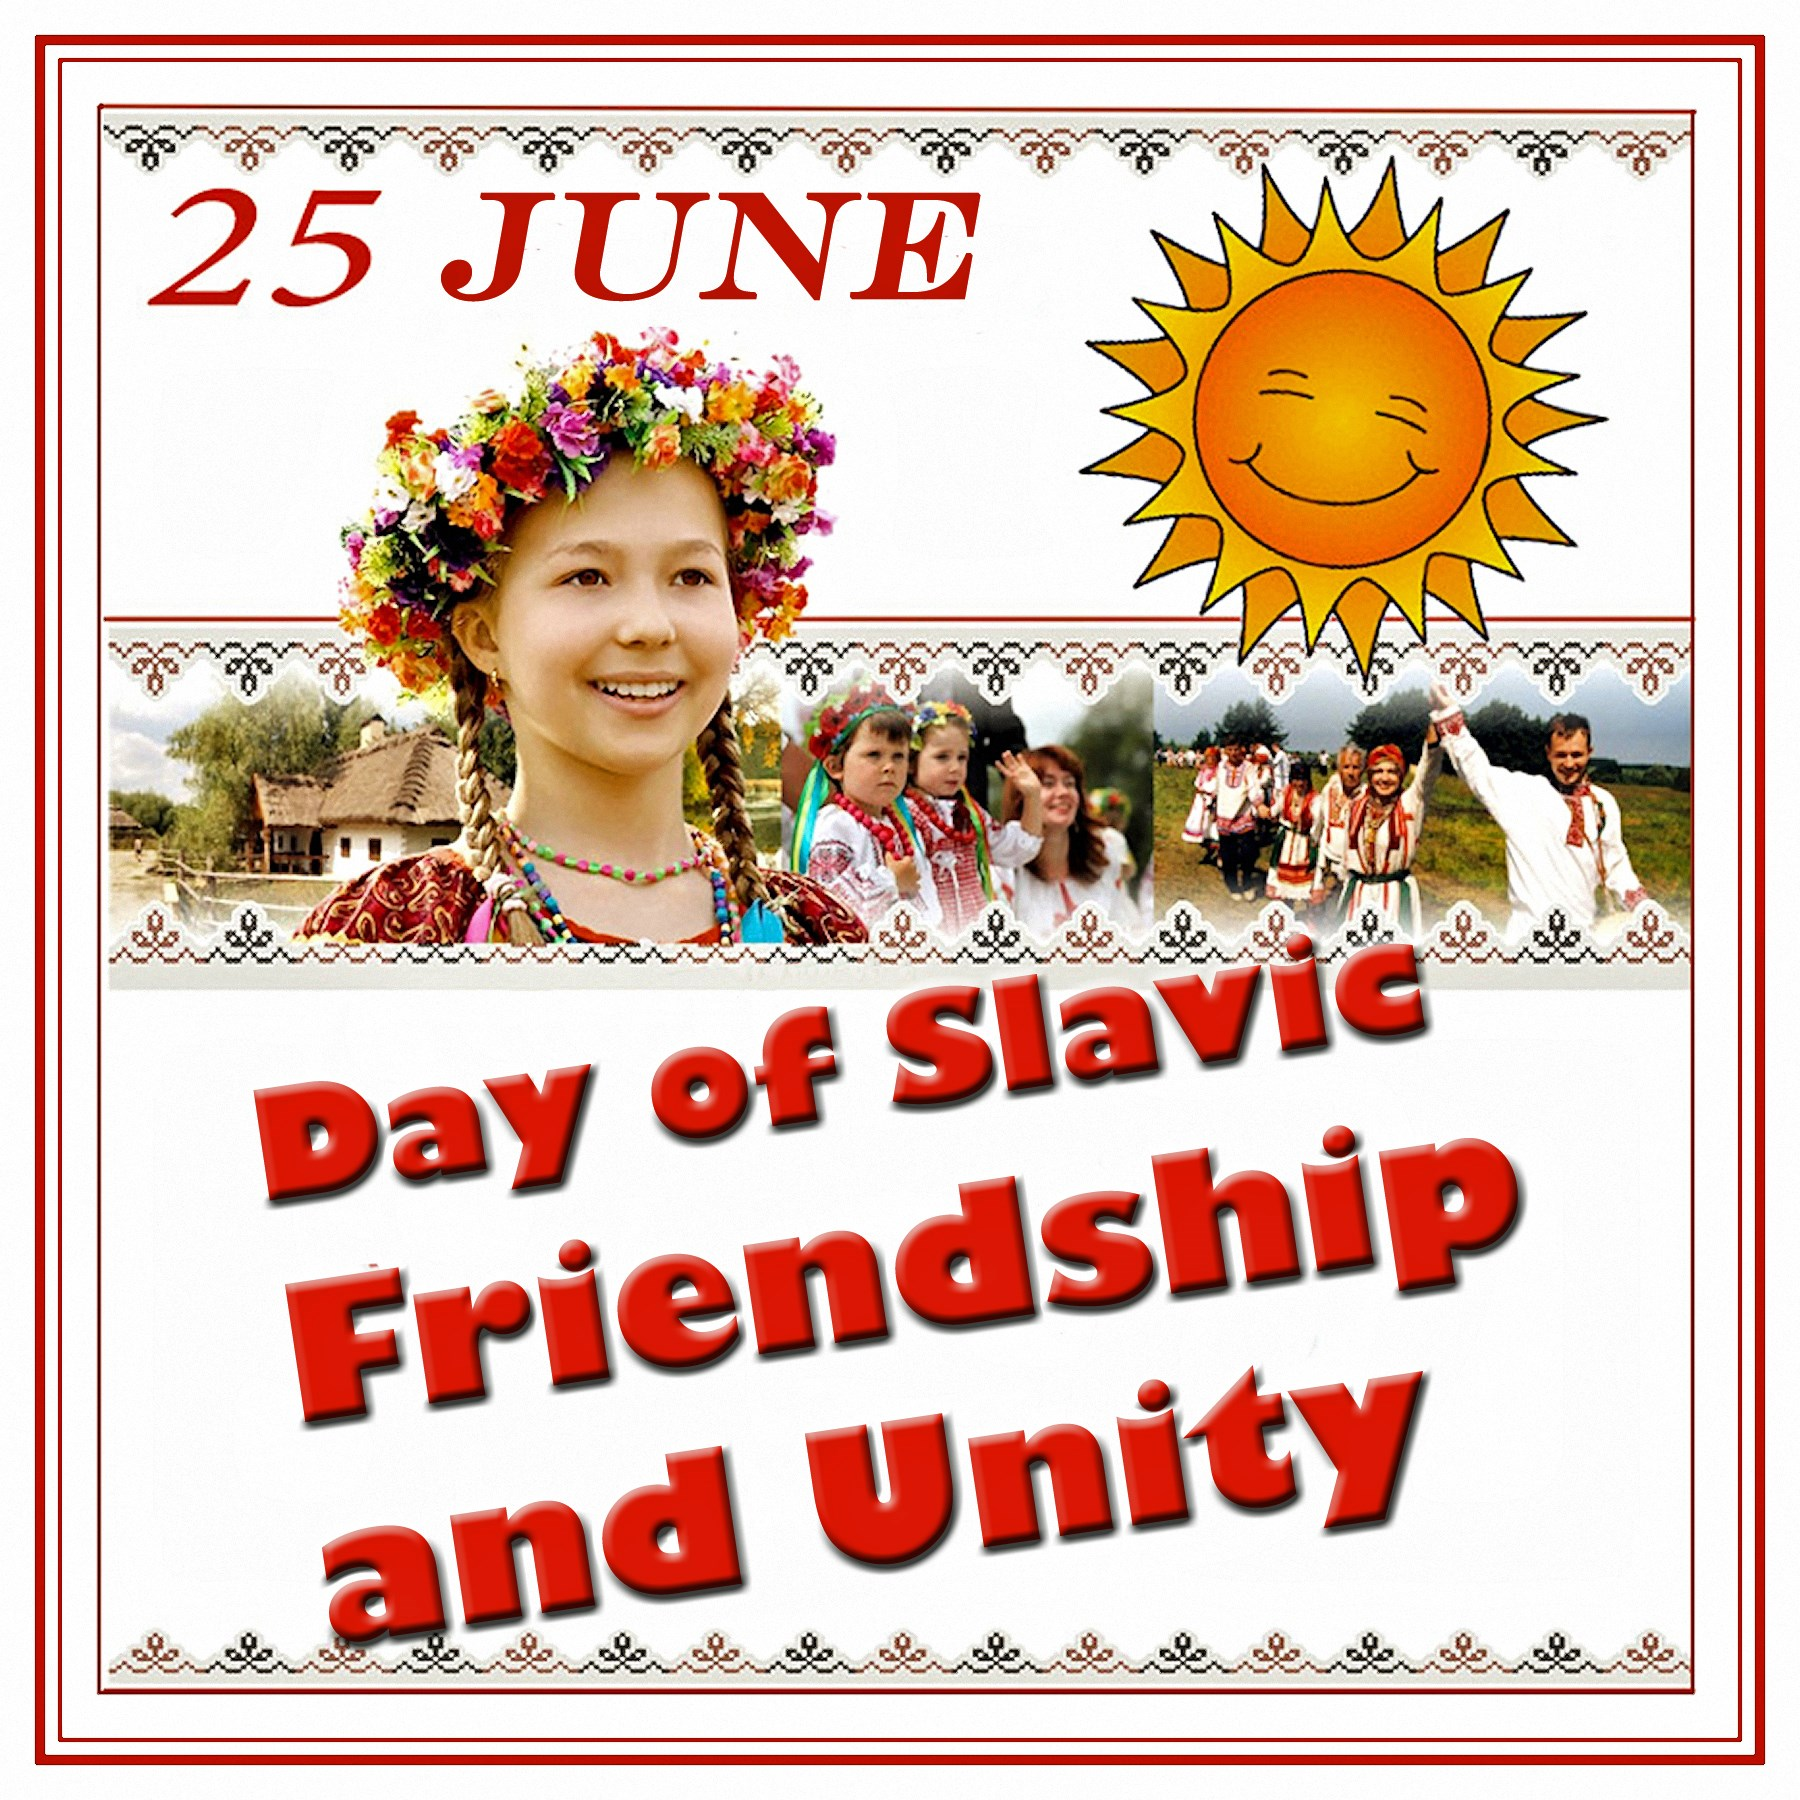 Official Greetings Of The Dnr Peoples Soviet On 25 Juneday Of